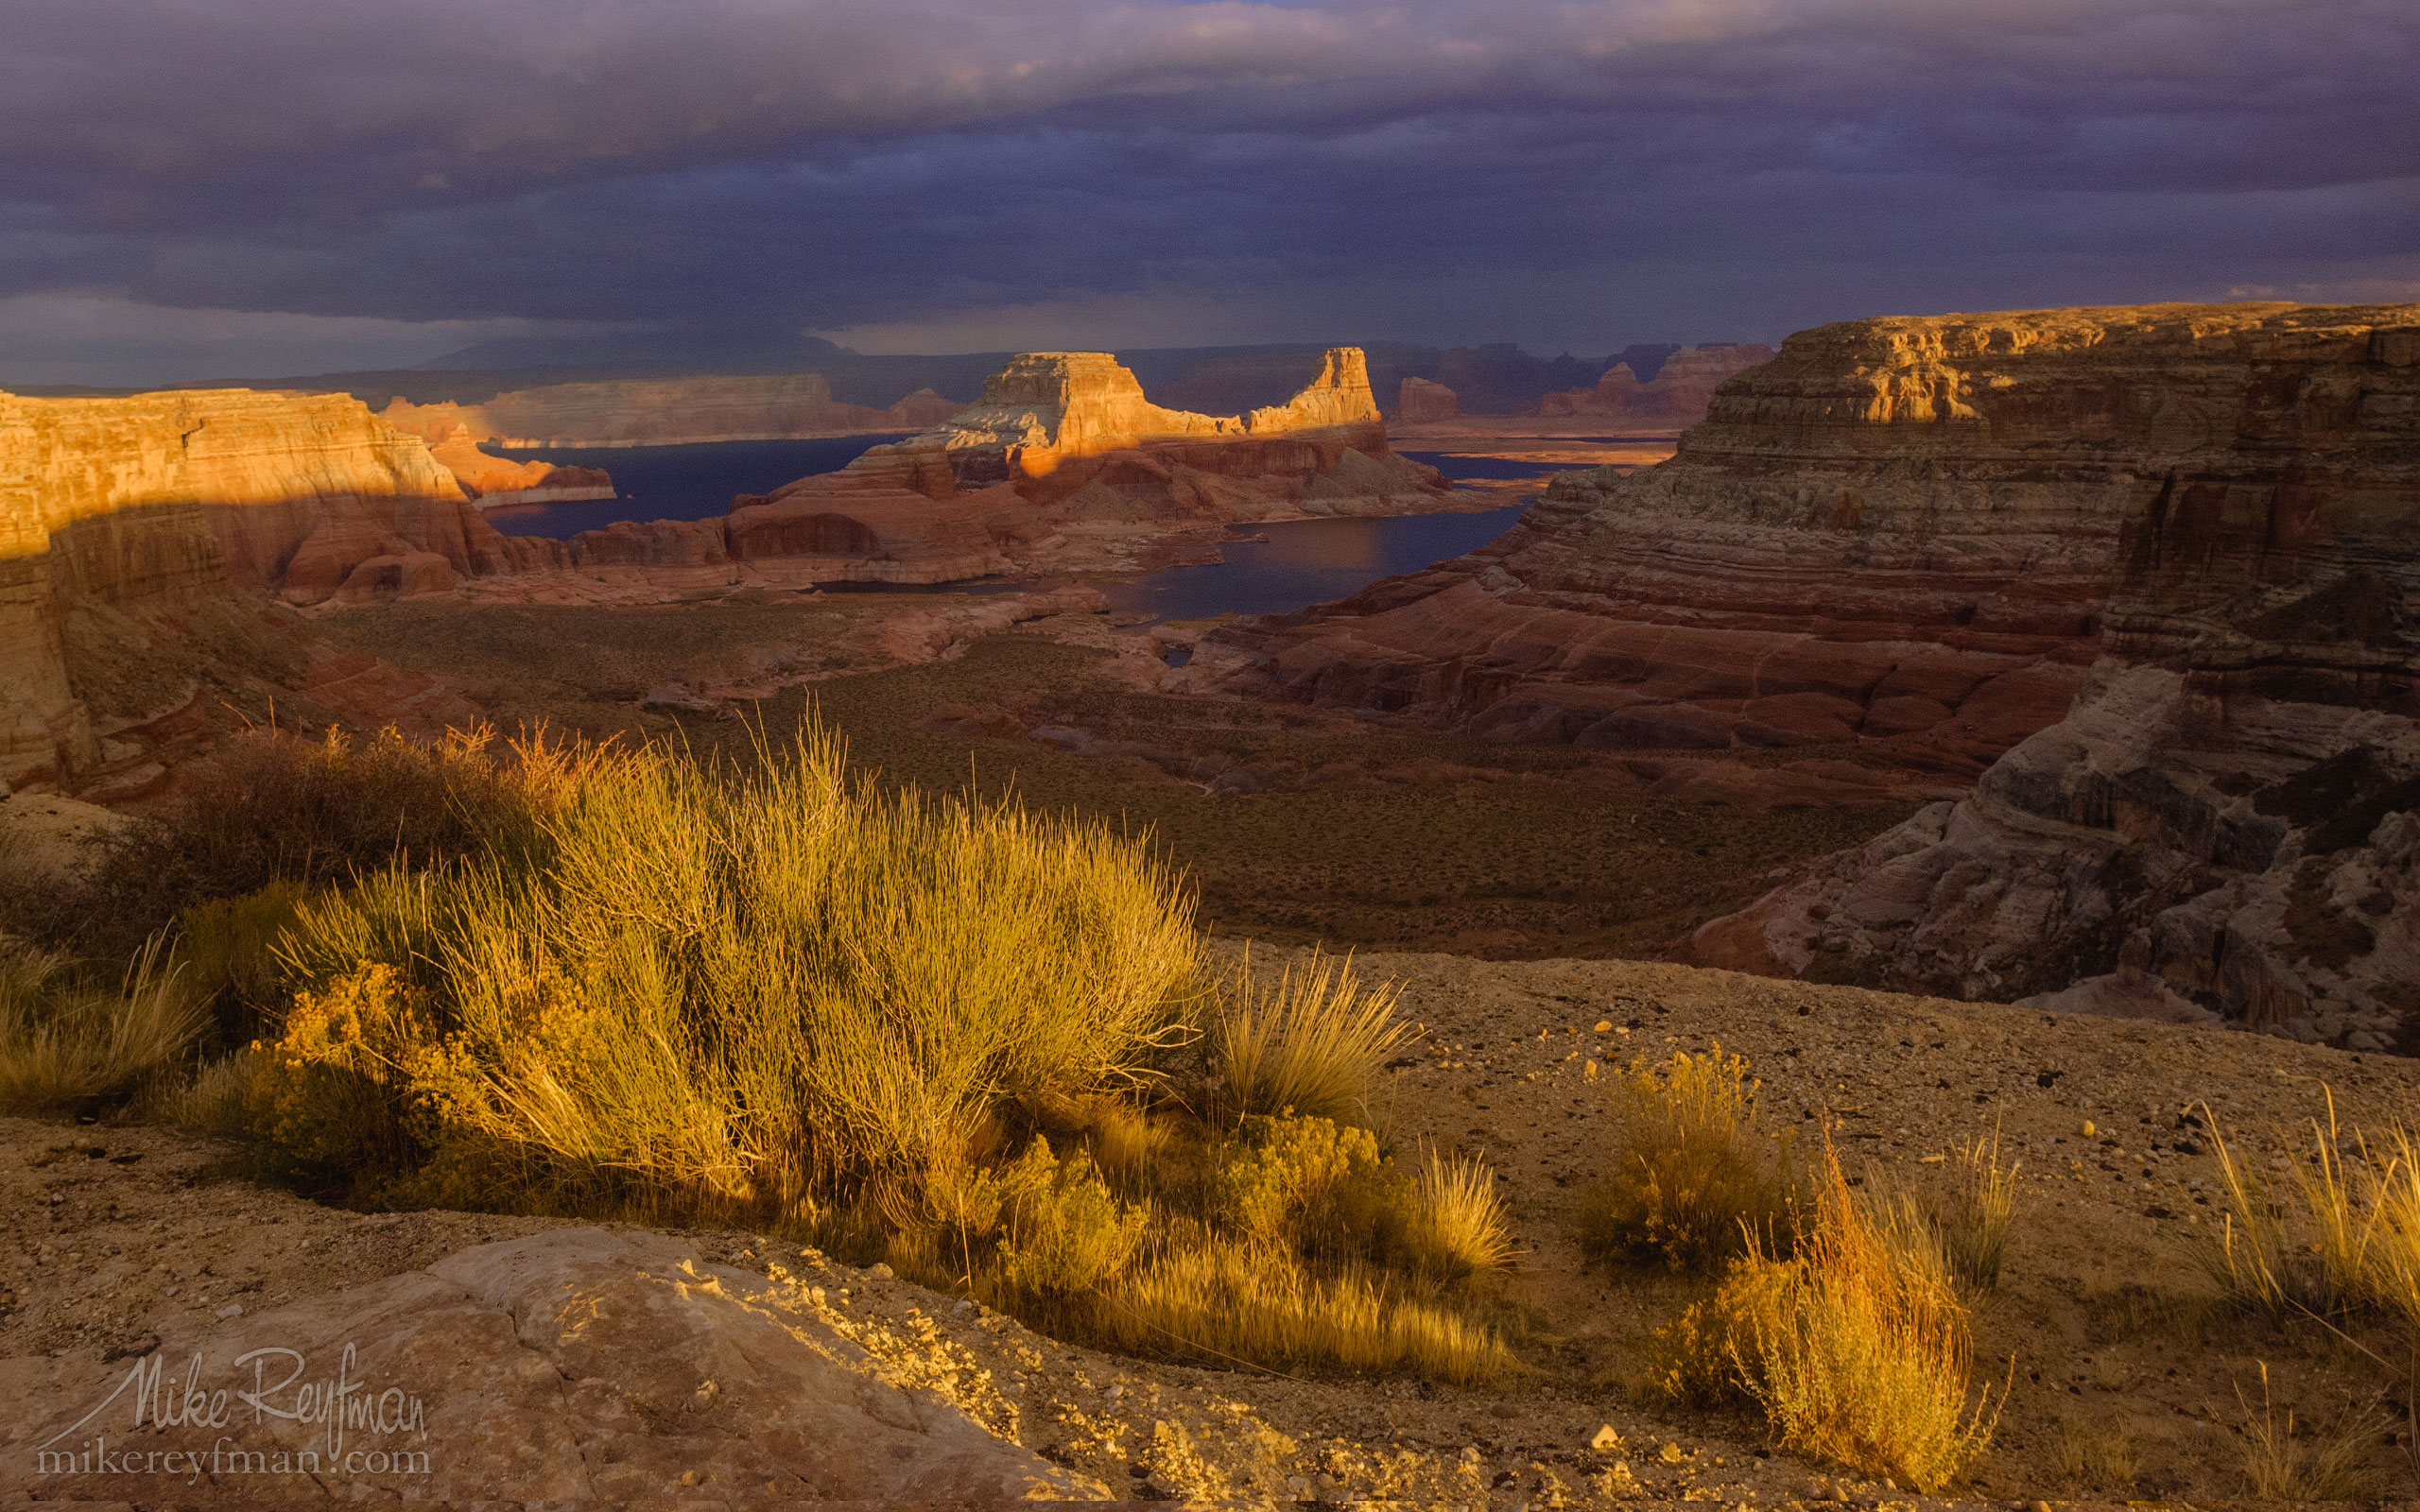 Romana Mesa, Alstrom Point. Gunsight Butte in Padre Bay. Lake Powell, Glen Canyon NRA, Uta/Arizona, USA. 014-LP3_MER0523.jpg - Lake Powell, Glen Canyon NAR. Colorado and Sun Juan Rivers. Utah/Arizona, USA  - Mike Reyfman Photography